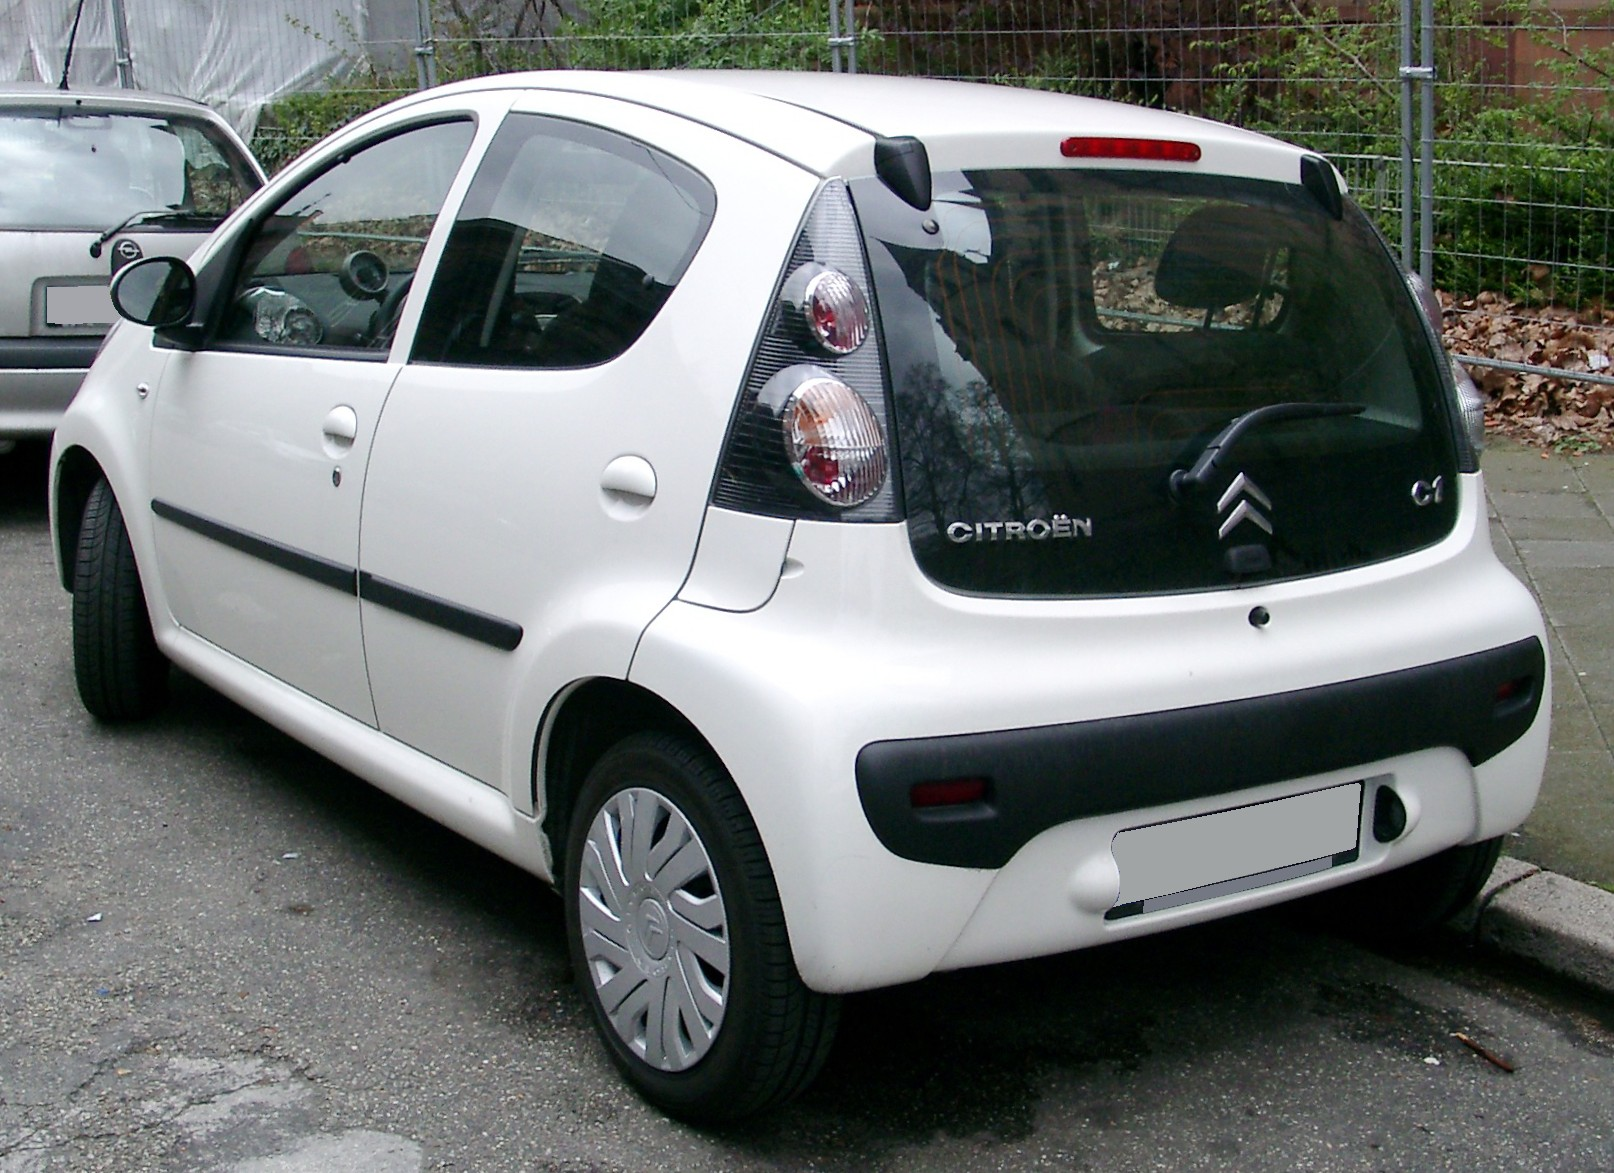 File:Citroen C1 rear 20080417.jpg - Wikimedia Commons